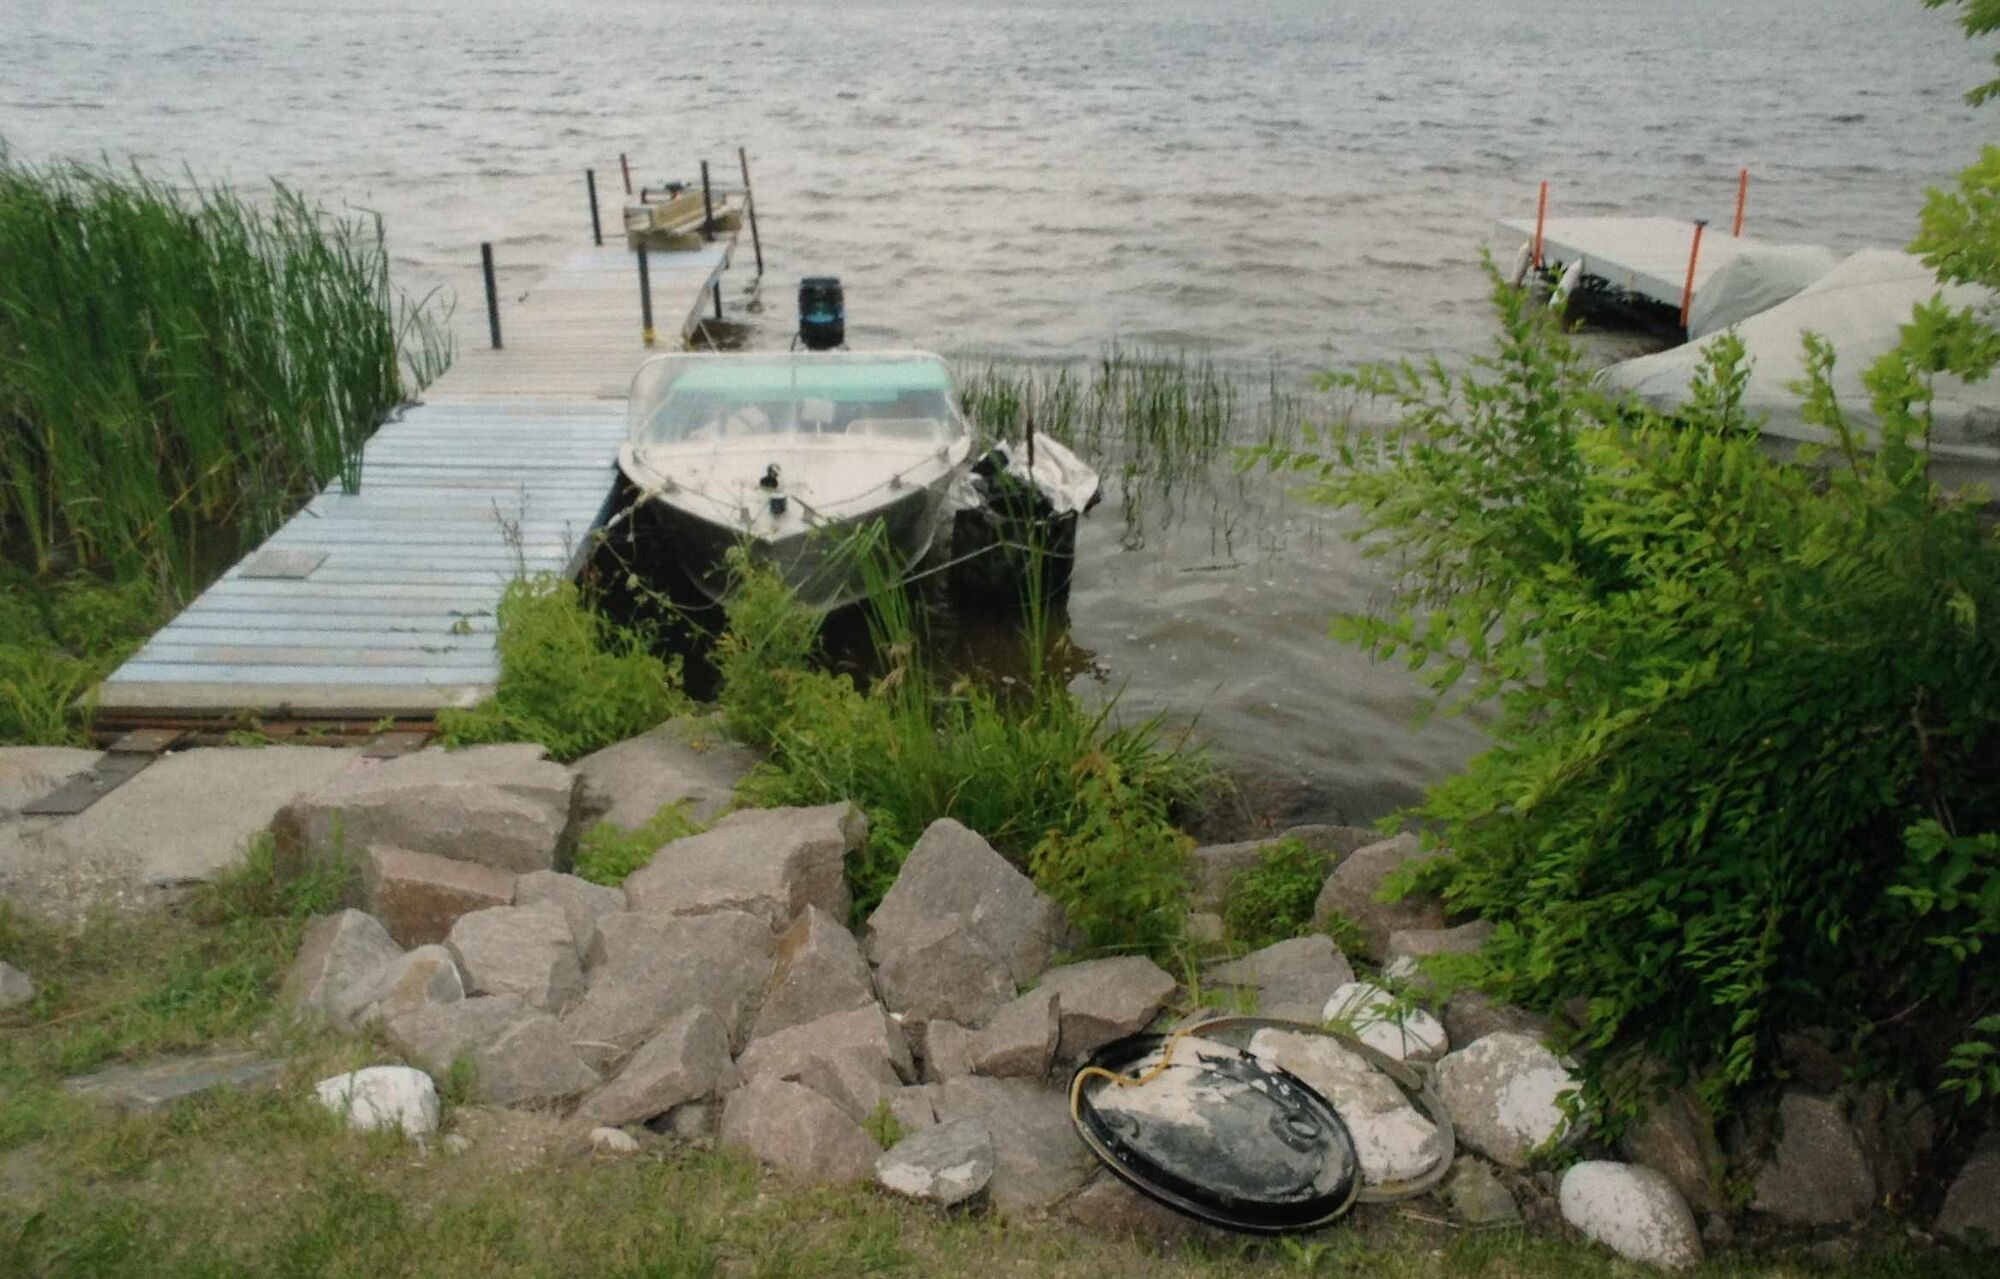 The Lee River scene as RCMP found it on July 23, 2008.